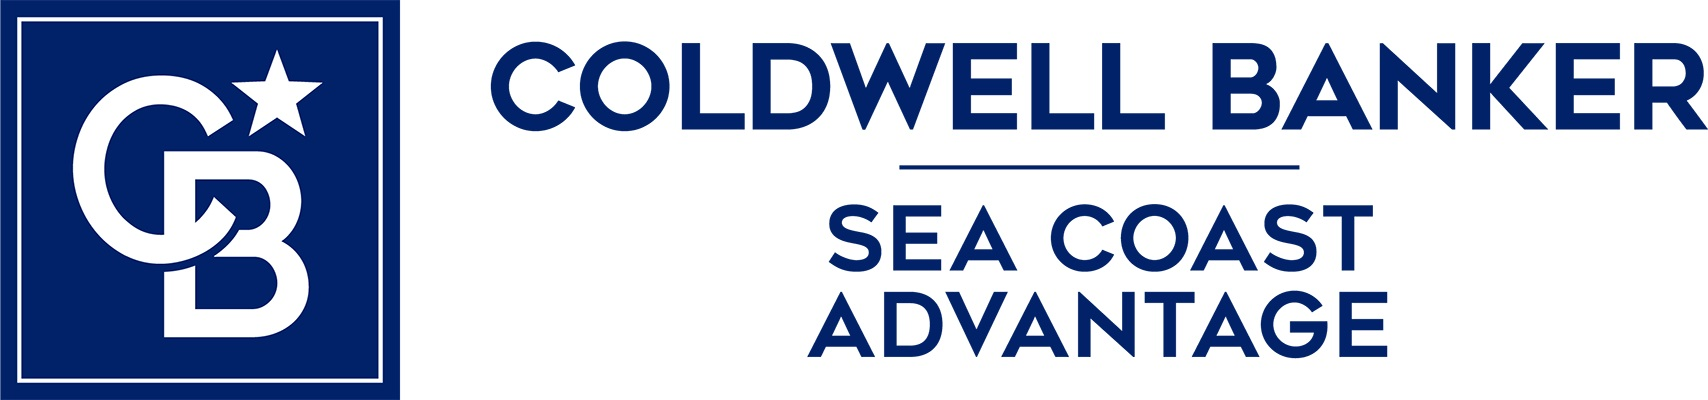 Laura LeFevre - Coldwell Banker Sea Coast Advantage Realty Logo